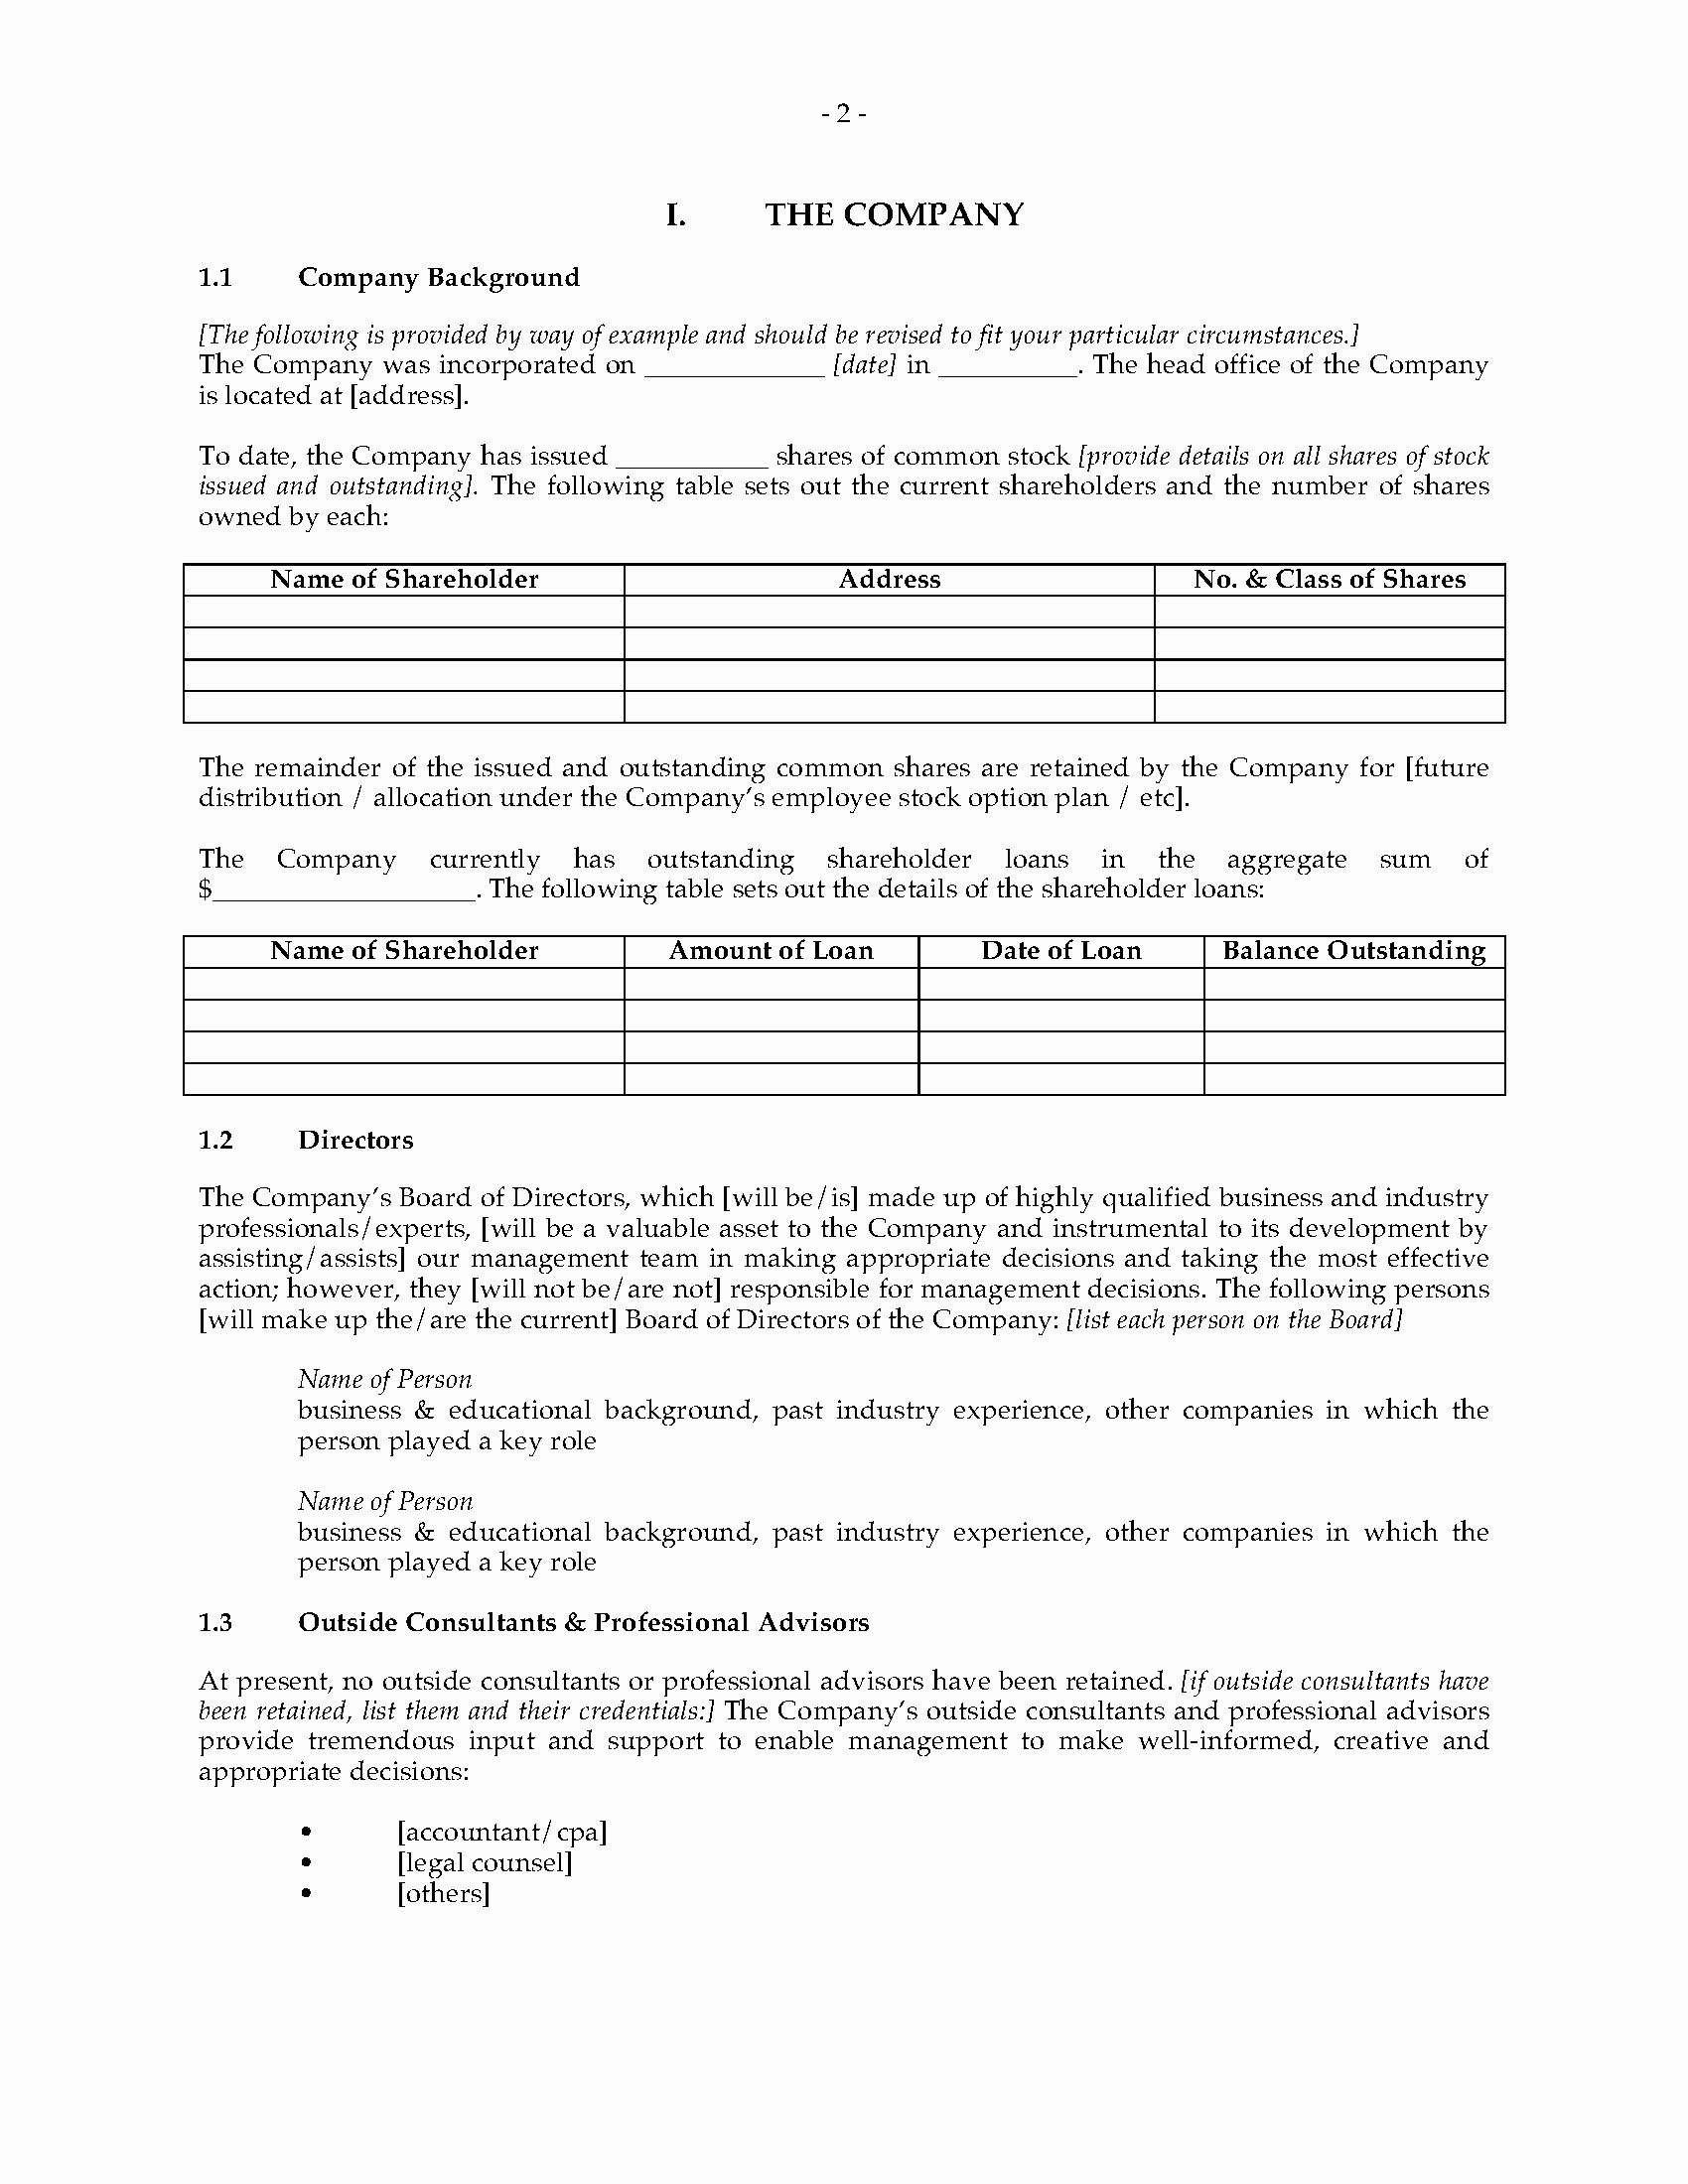 Film Business Plan Template Awesome Documentary Business Plan